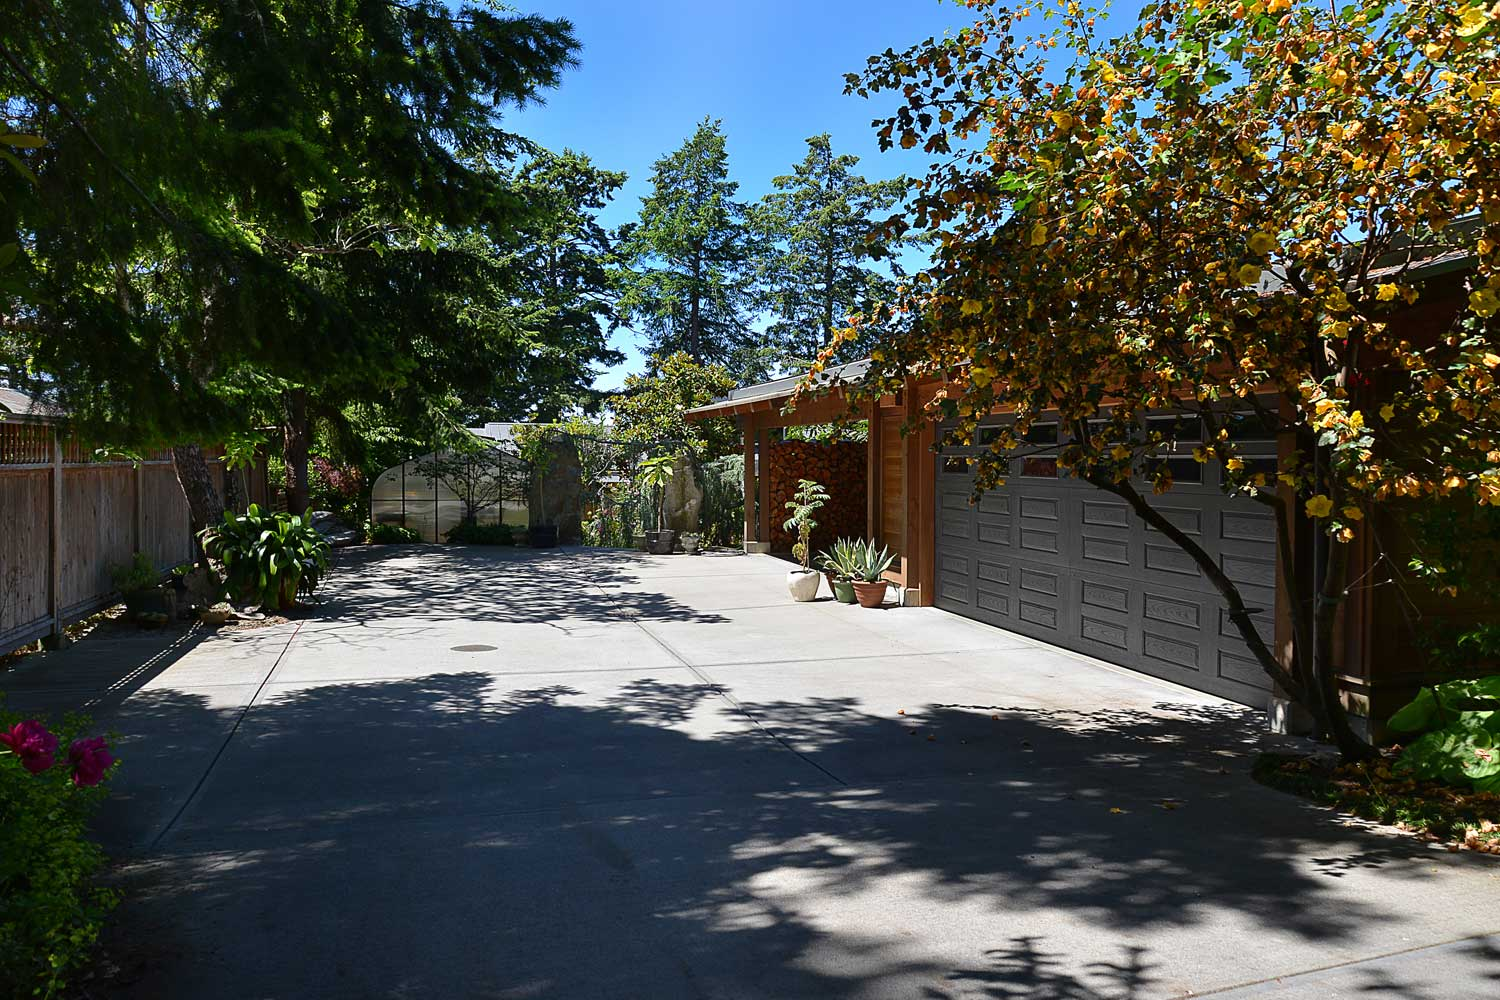 This private, premium holiday home features a dual garage, courtyard, and plenty of firewood at the end of the driveway.